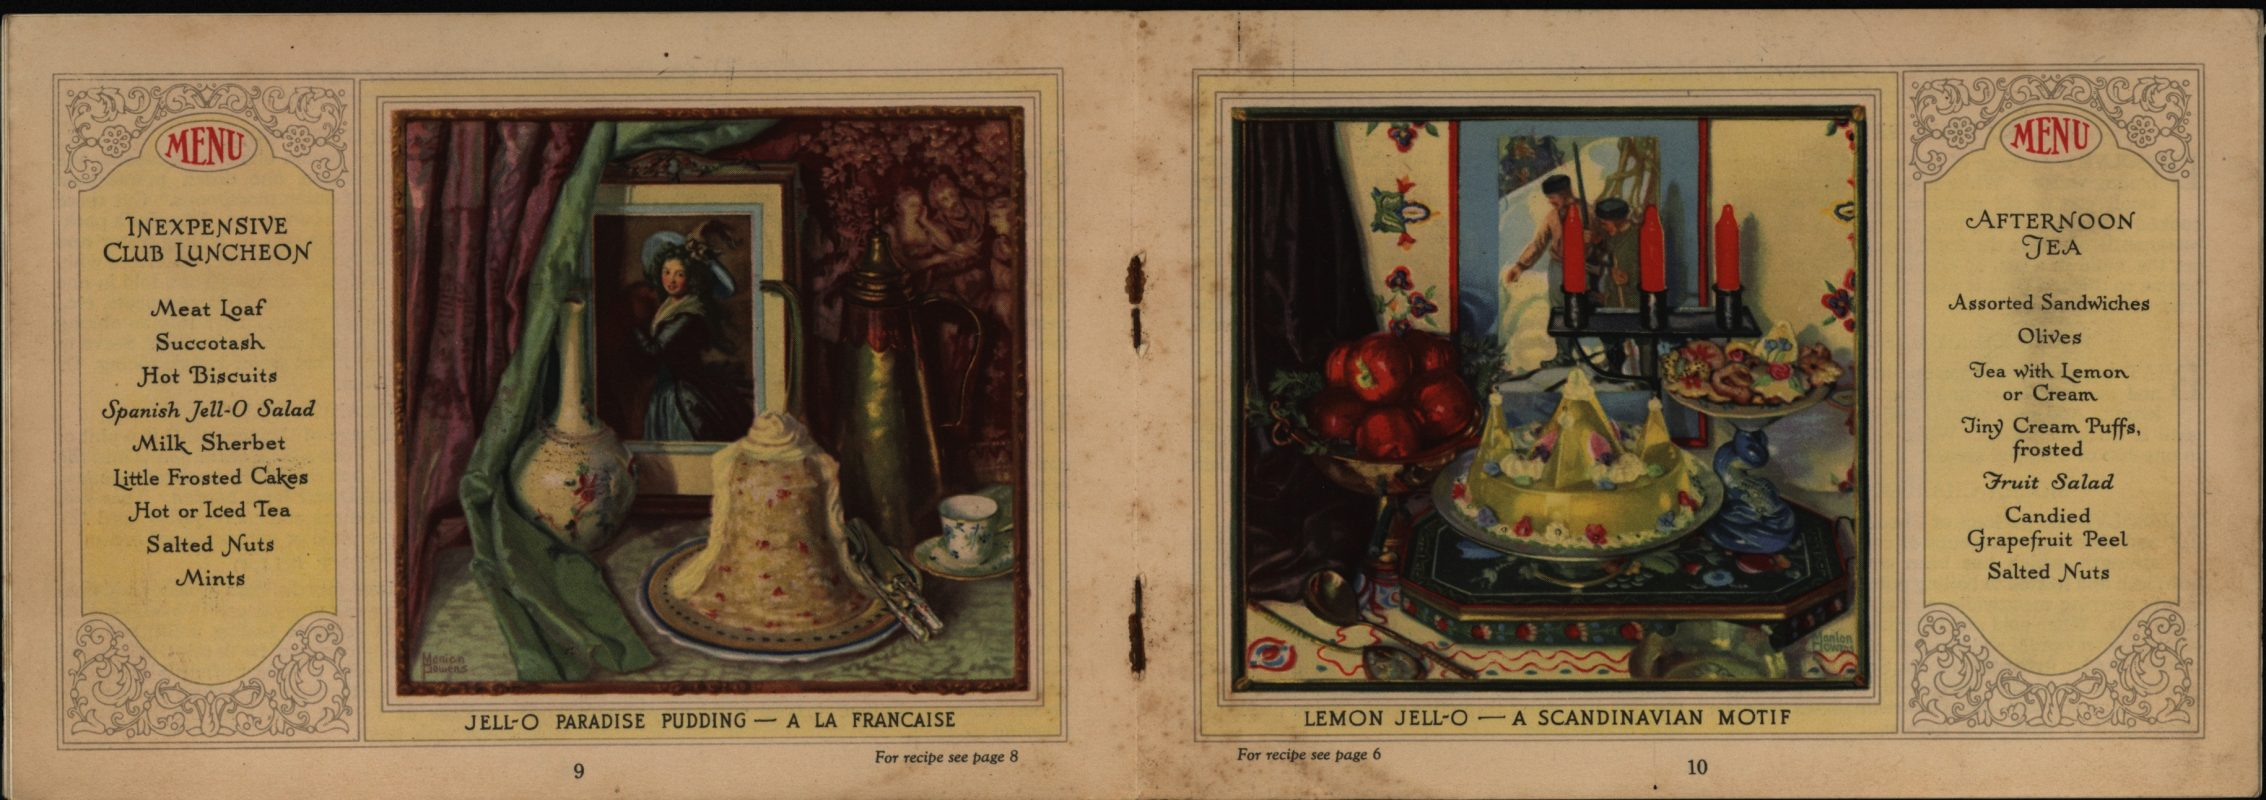 """A La Francaise"" and ""A Scandinavian Motif.""Jell-O, America's Most Famous Dessert. The Jell-O Company, Inc., circa 1923"